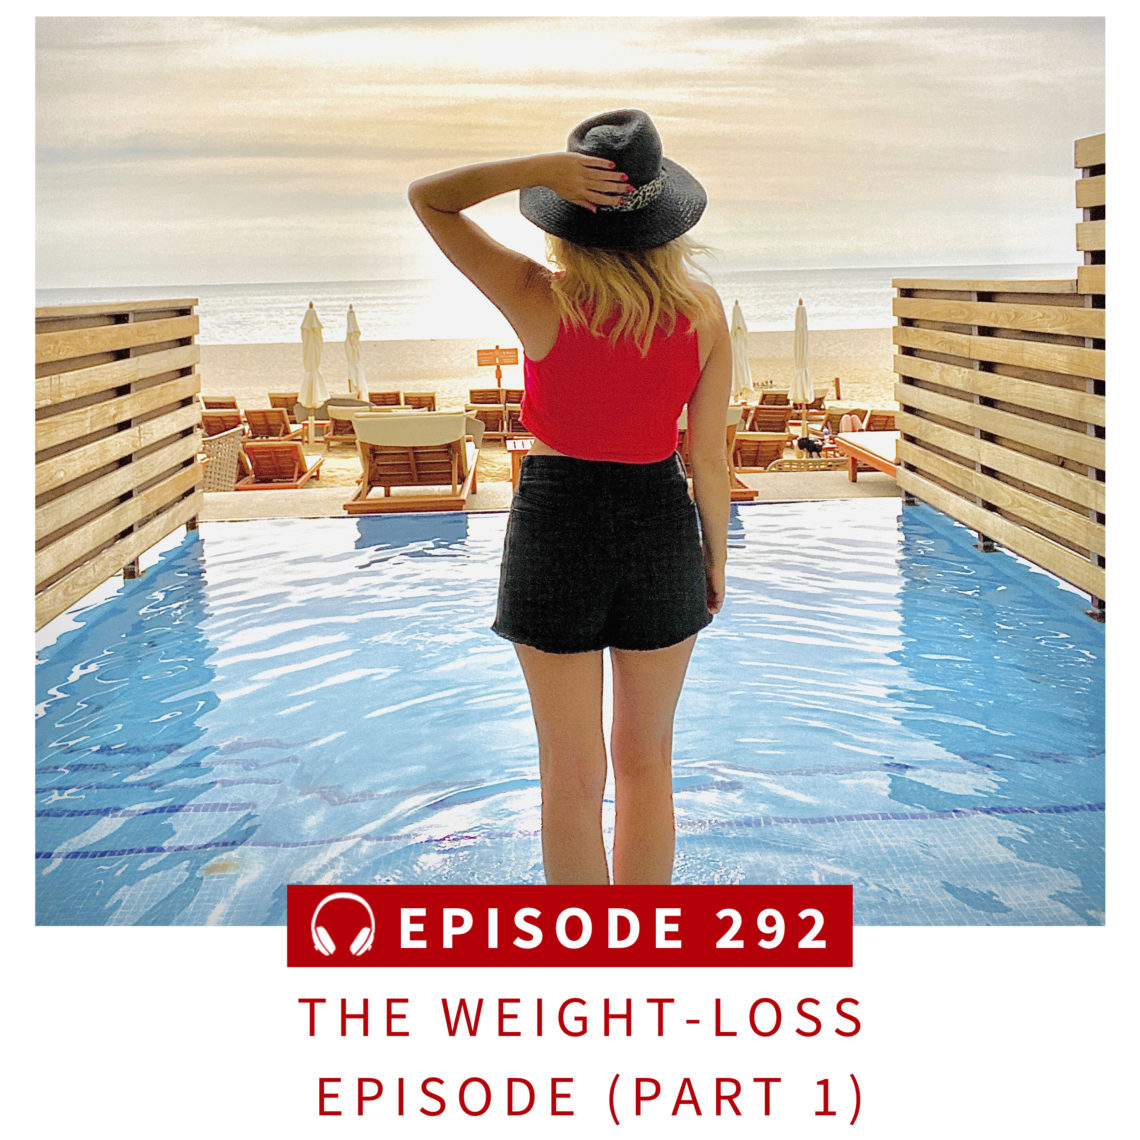 292: The Weight-Loss Series Part 1: Functional Medicine, Spirituality and Self-Care